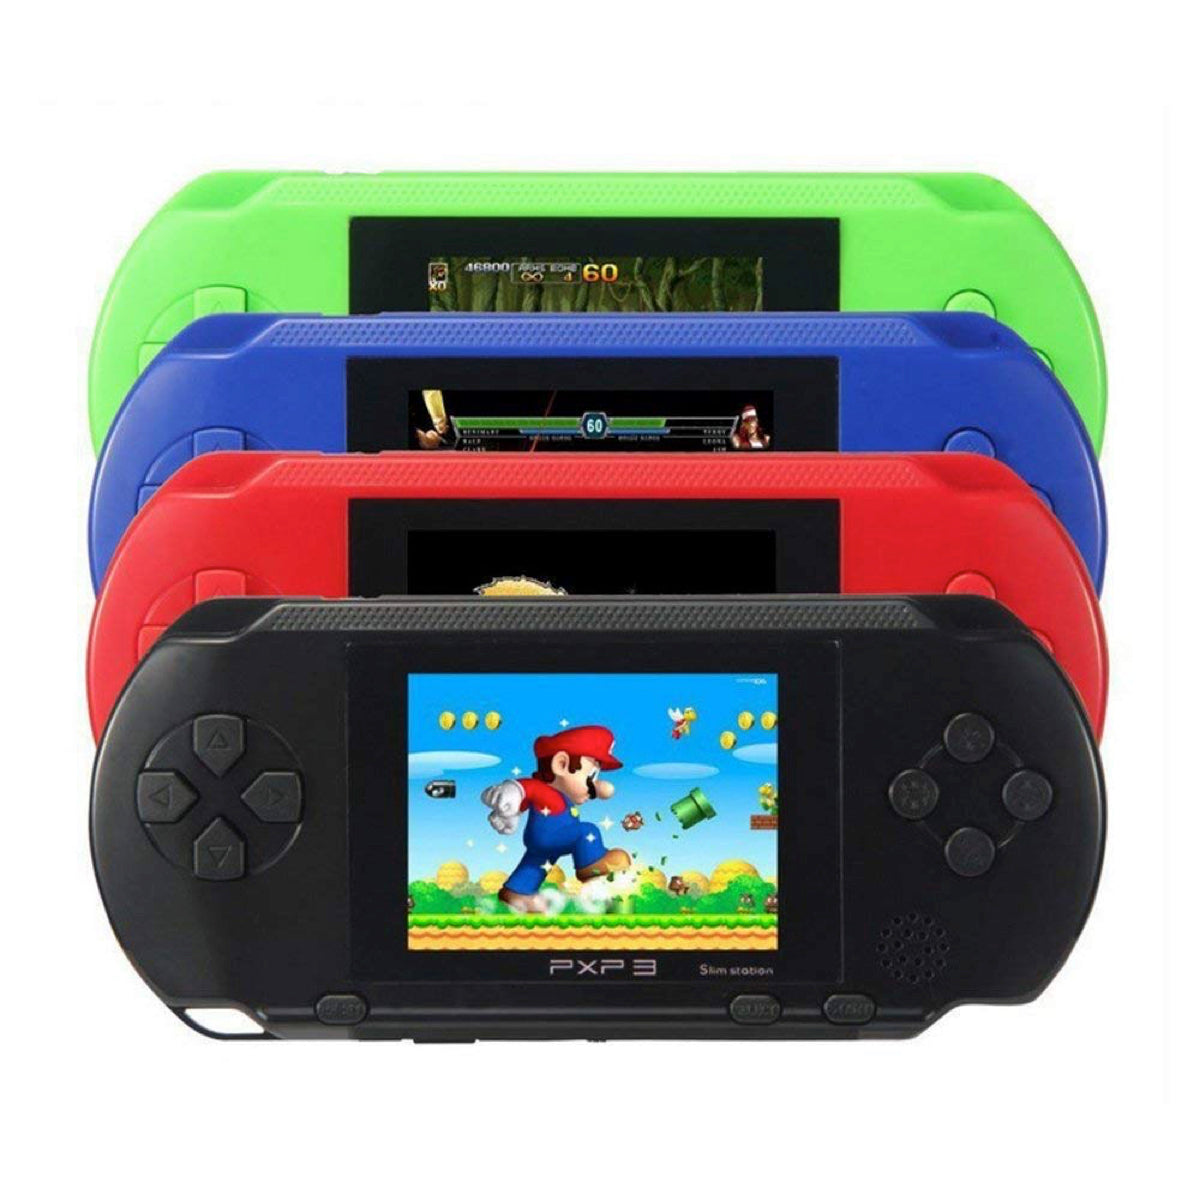 PXP3 Portable Handheld Video Game System